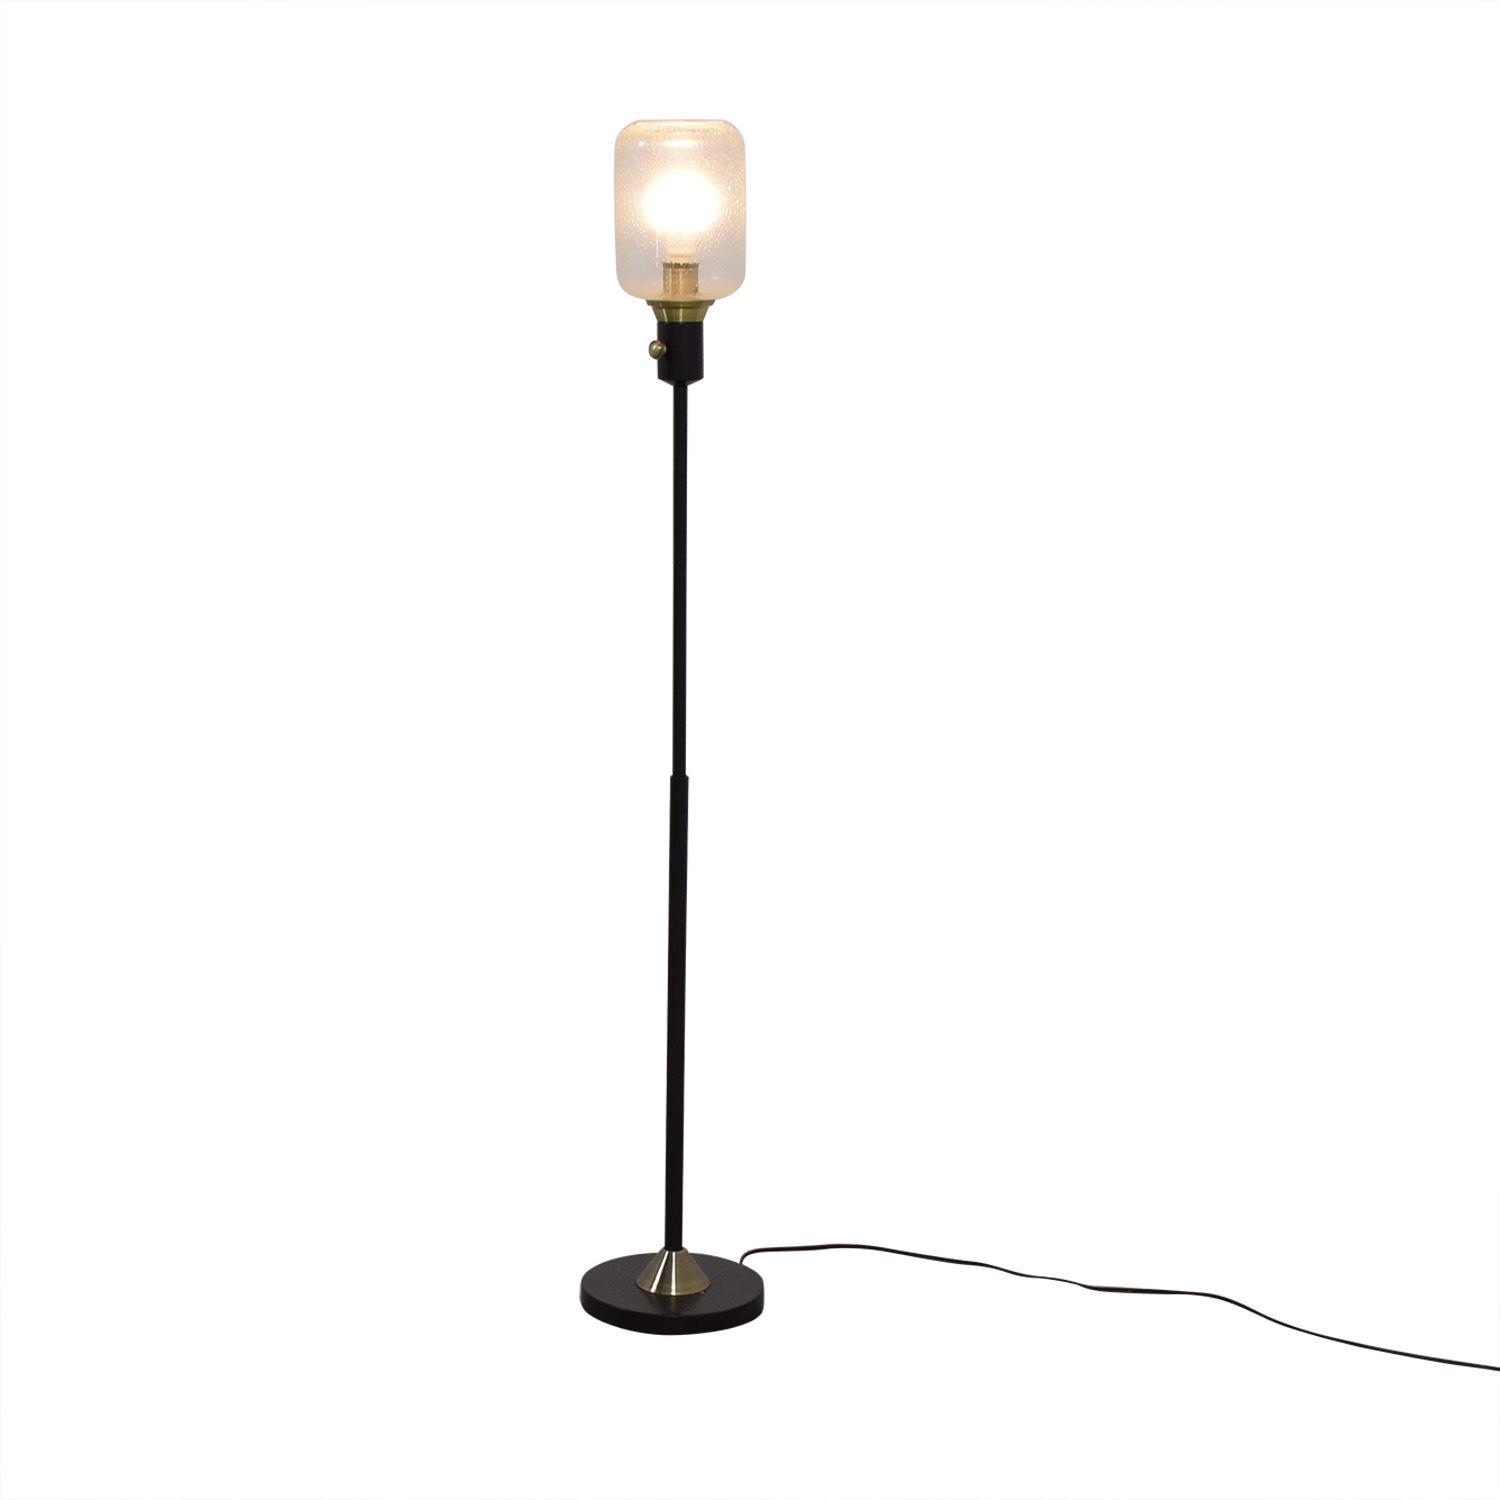 48 off pacific coast lighting pacific coast lighting menlo lane pacific coast lighting menlo lane floor lamp sale aloadofball Image collections